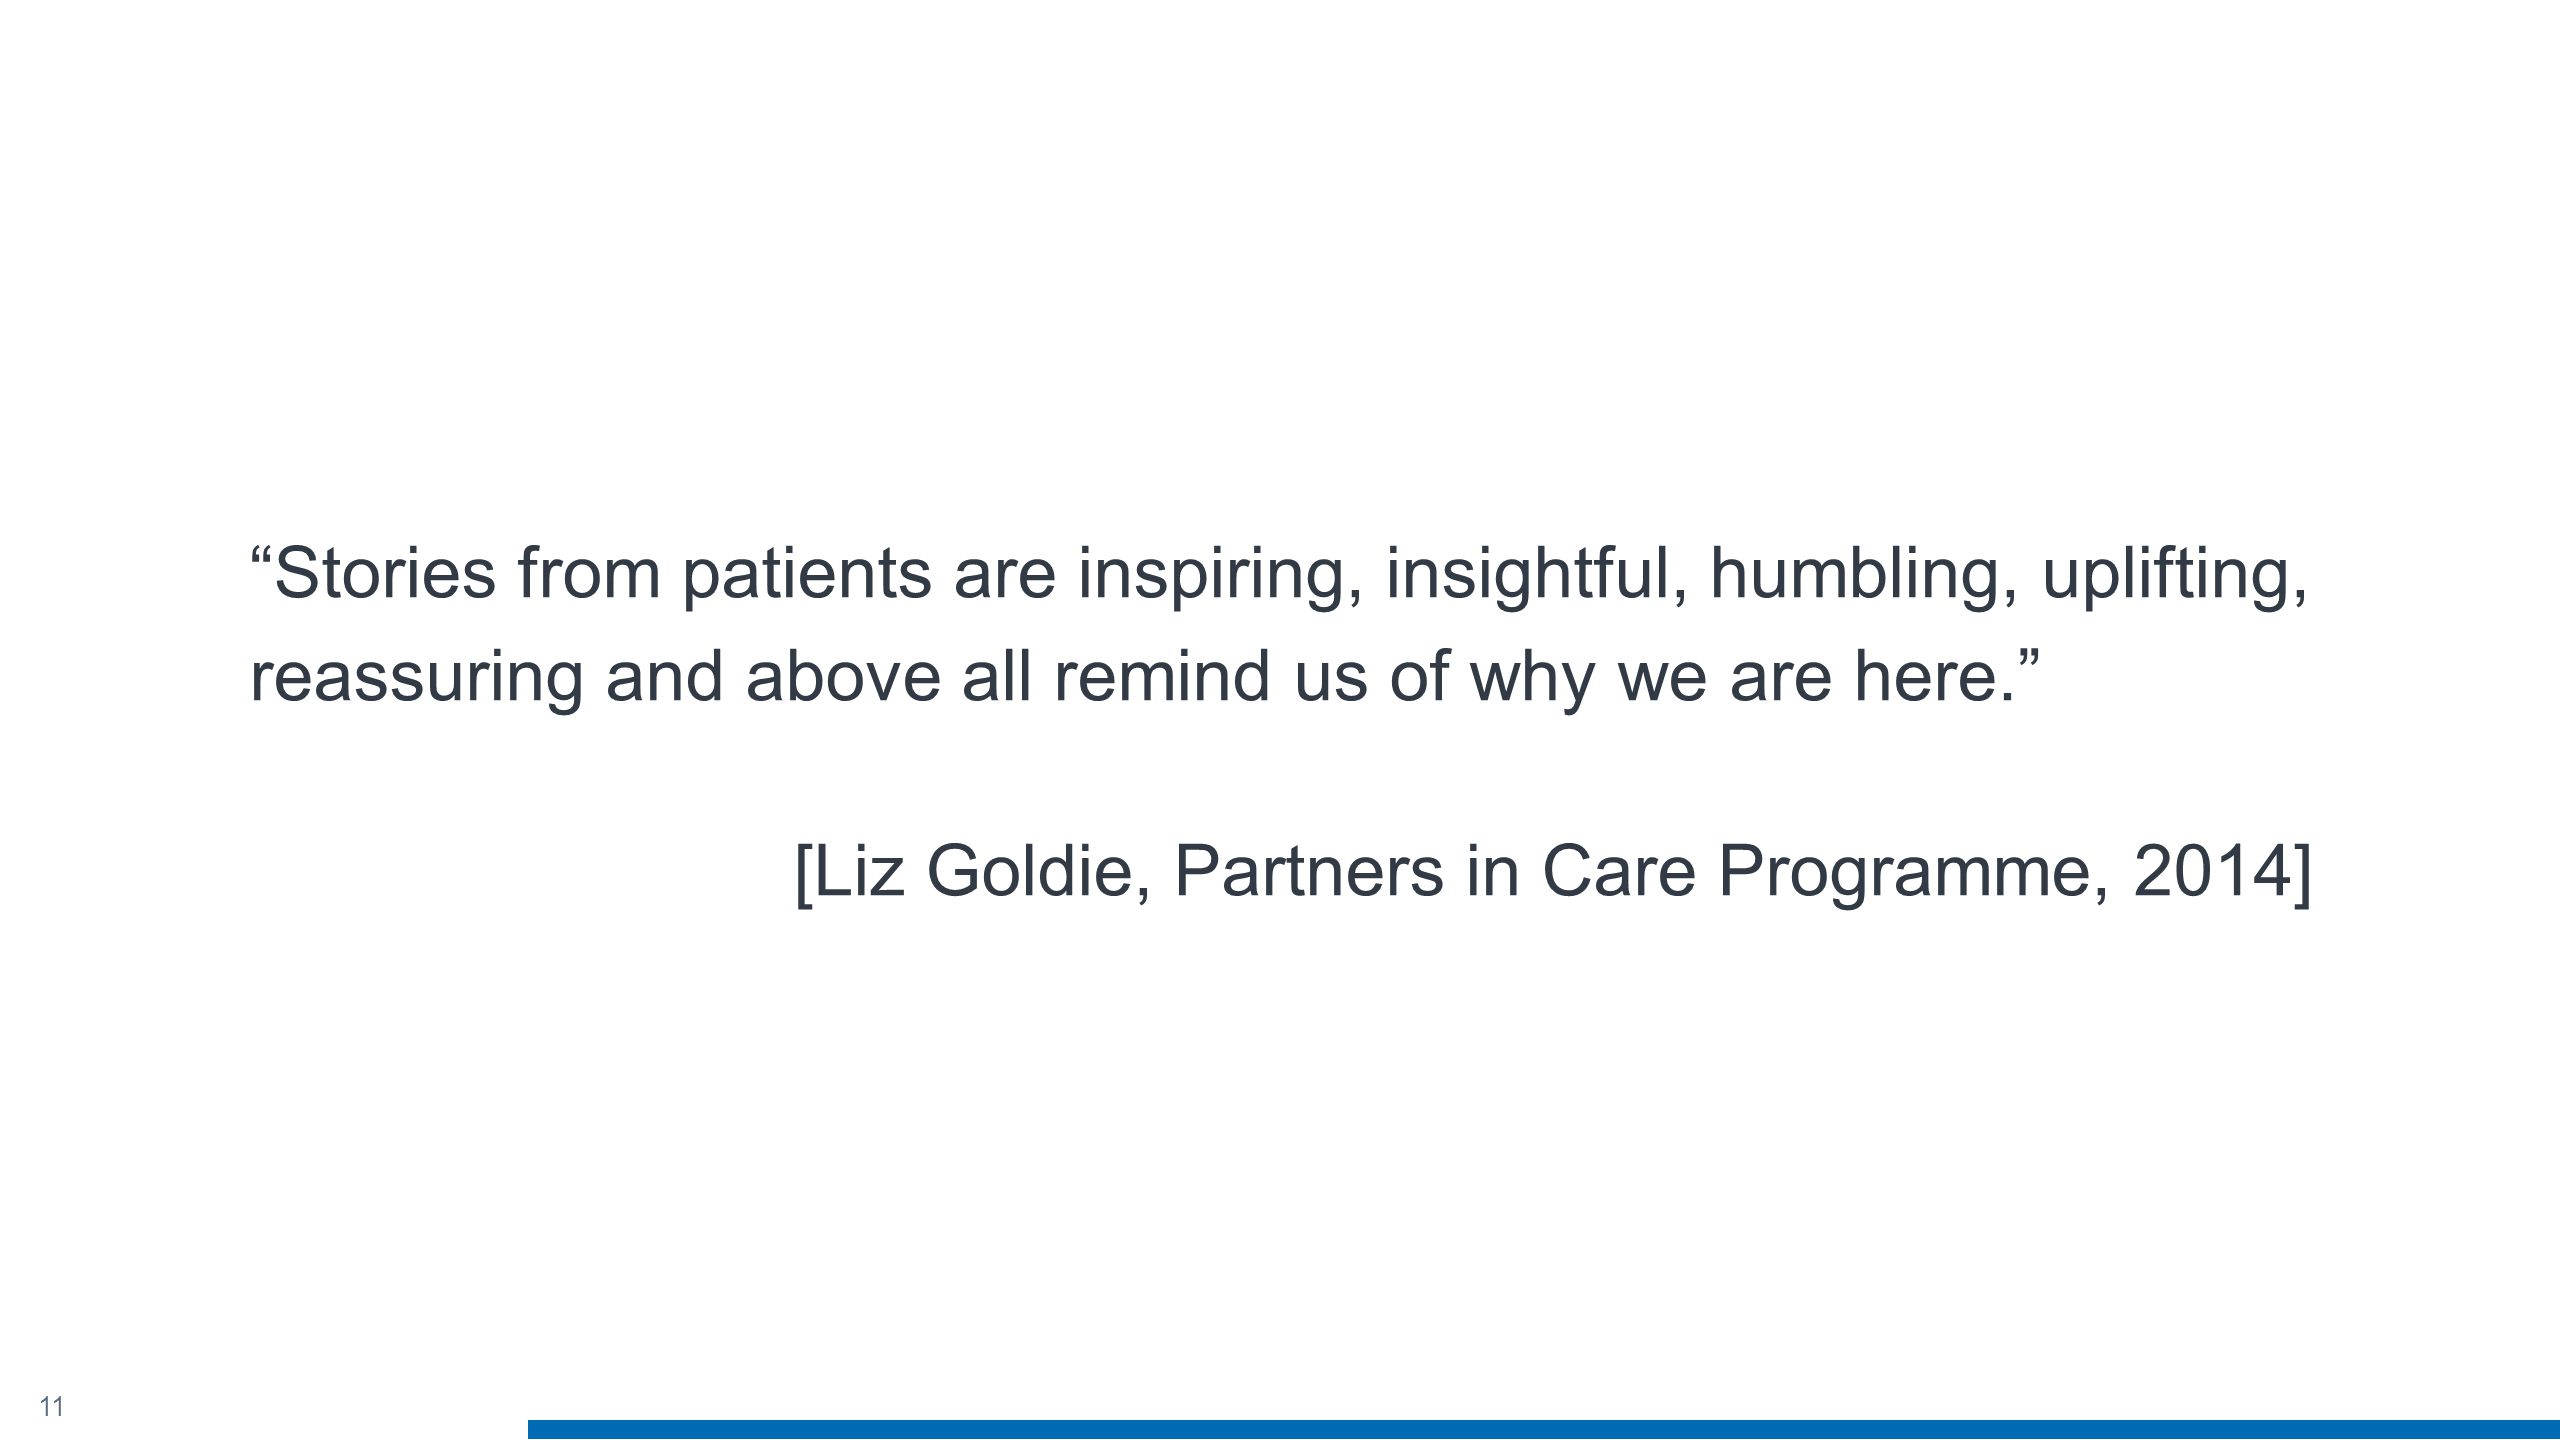 11 Stories from patients are inspiring, insightful, humbling, uplifting, reassuring and above all remind us of why we are here. [Liz Goldie, Partners in Care Programme, 2014]